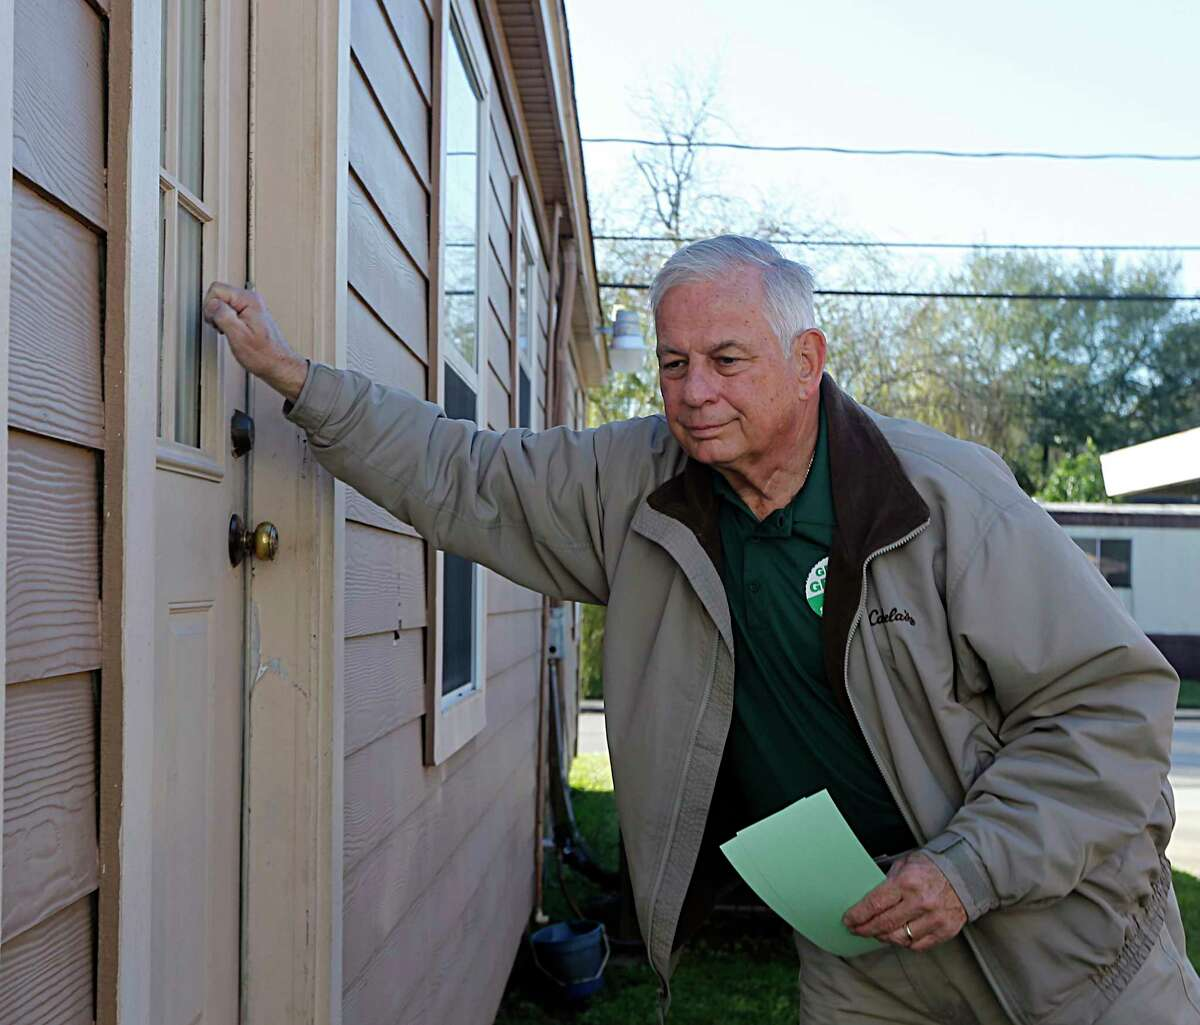 U.S. Rep. Gene Green, left, was drawn out of his district in the controversial redistricting plan of 2003, when he found himself suddenly placed in the looping district belonging to U.S. Rep Ted Poe, right. Green decided to sell his house and move.